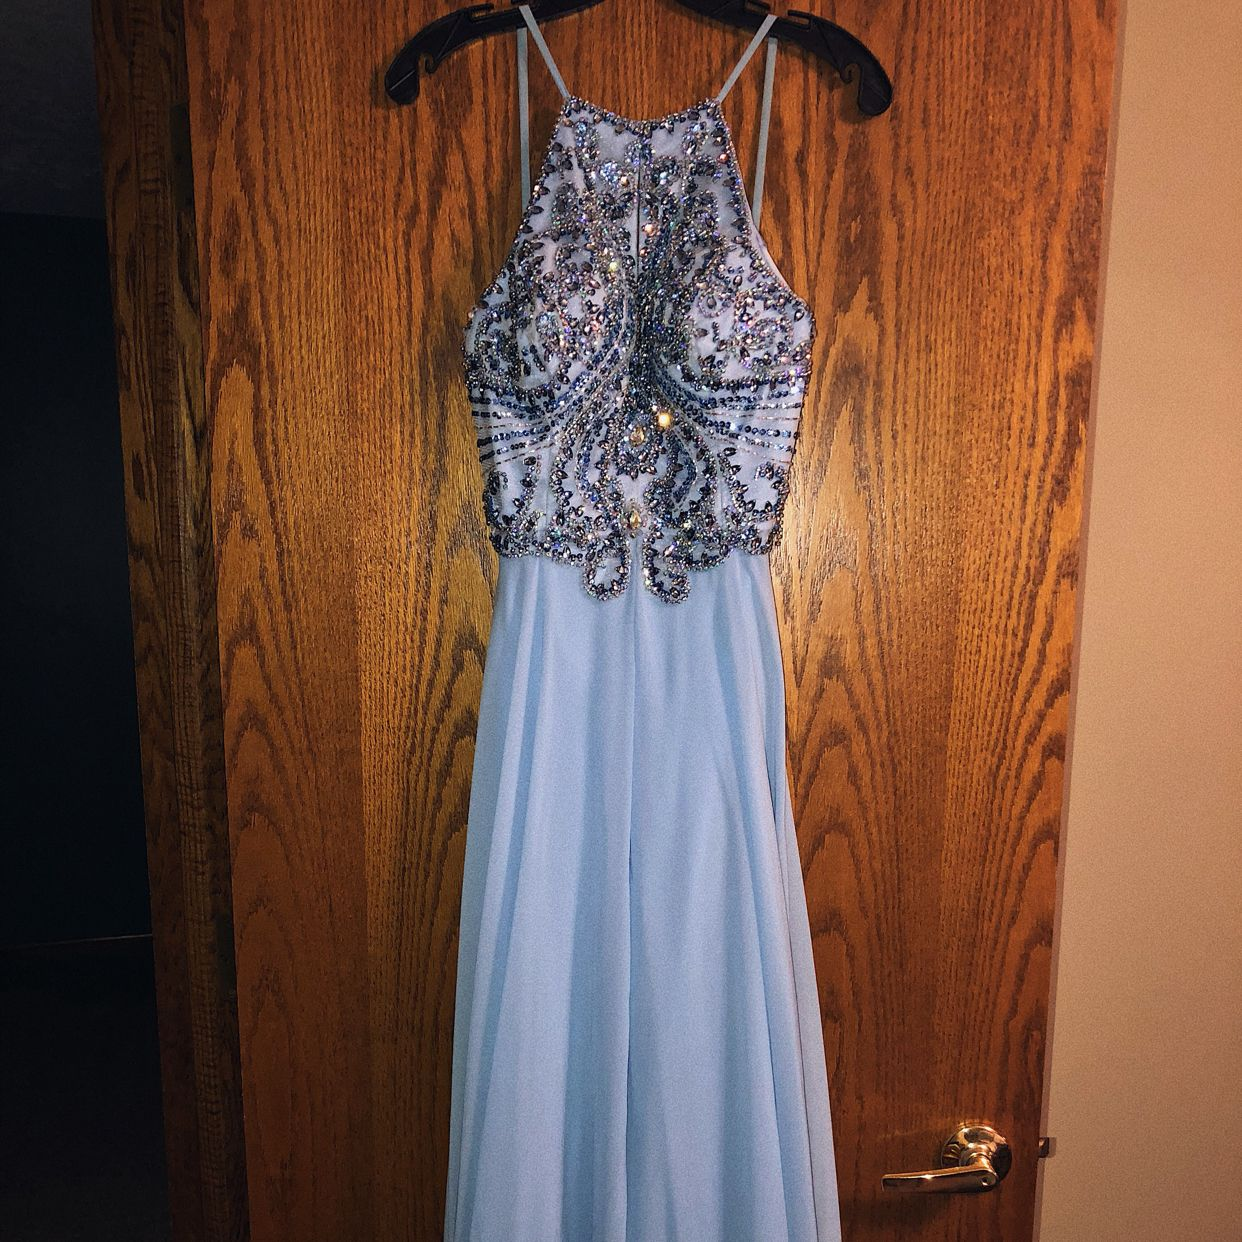 Beautiful Periwinkle Proms Dress A Few Sparkles On The Side Are Off But In Perfect Condition Rather Than That Alread Prom Dresses Dresses Prom Dresses Jovani [ 1242 x 1242 Pixel ]